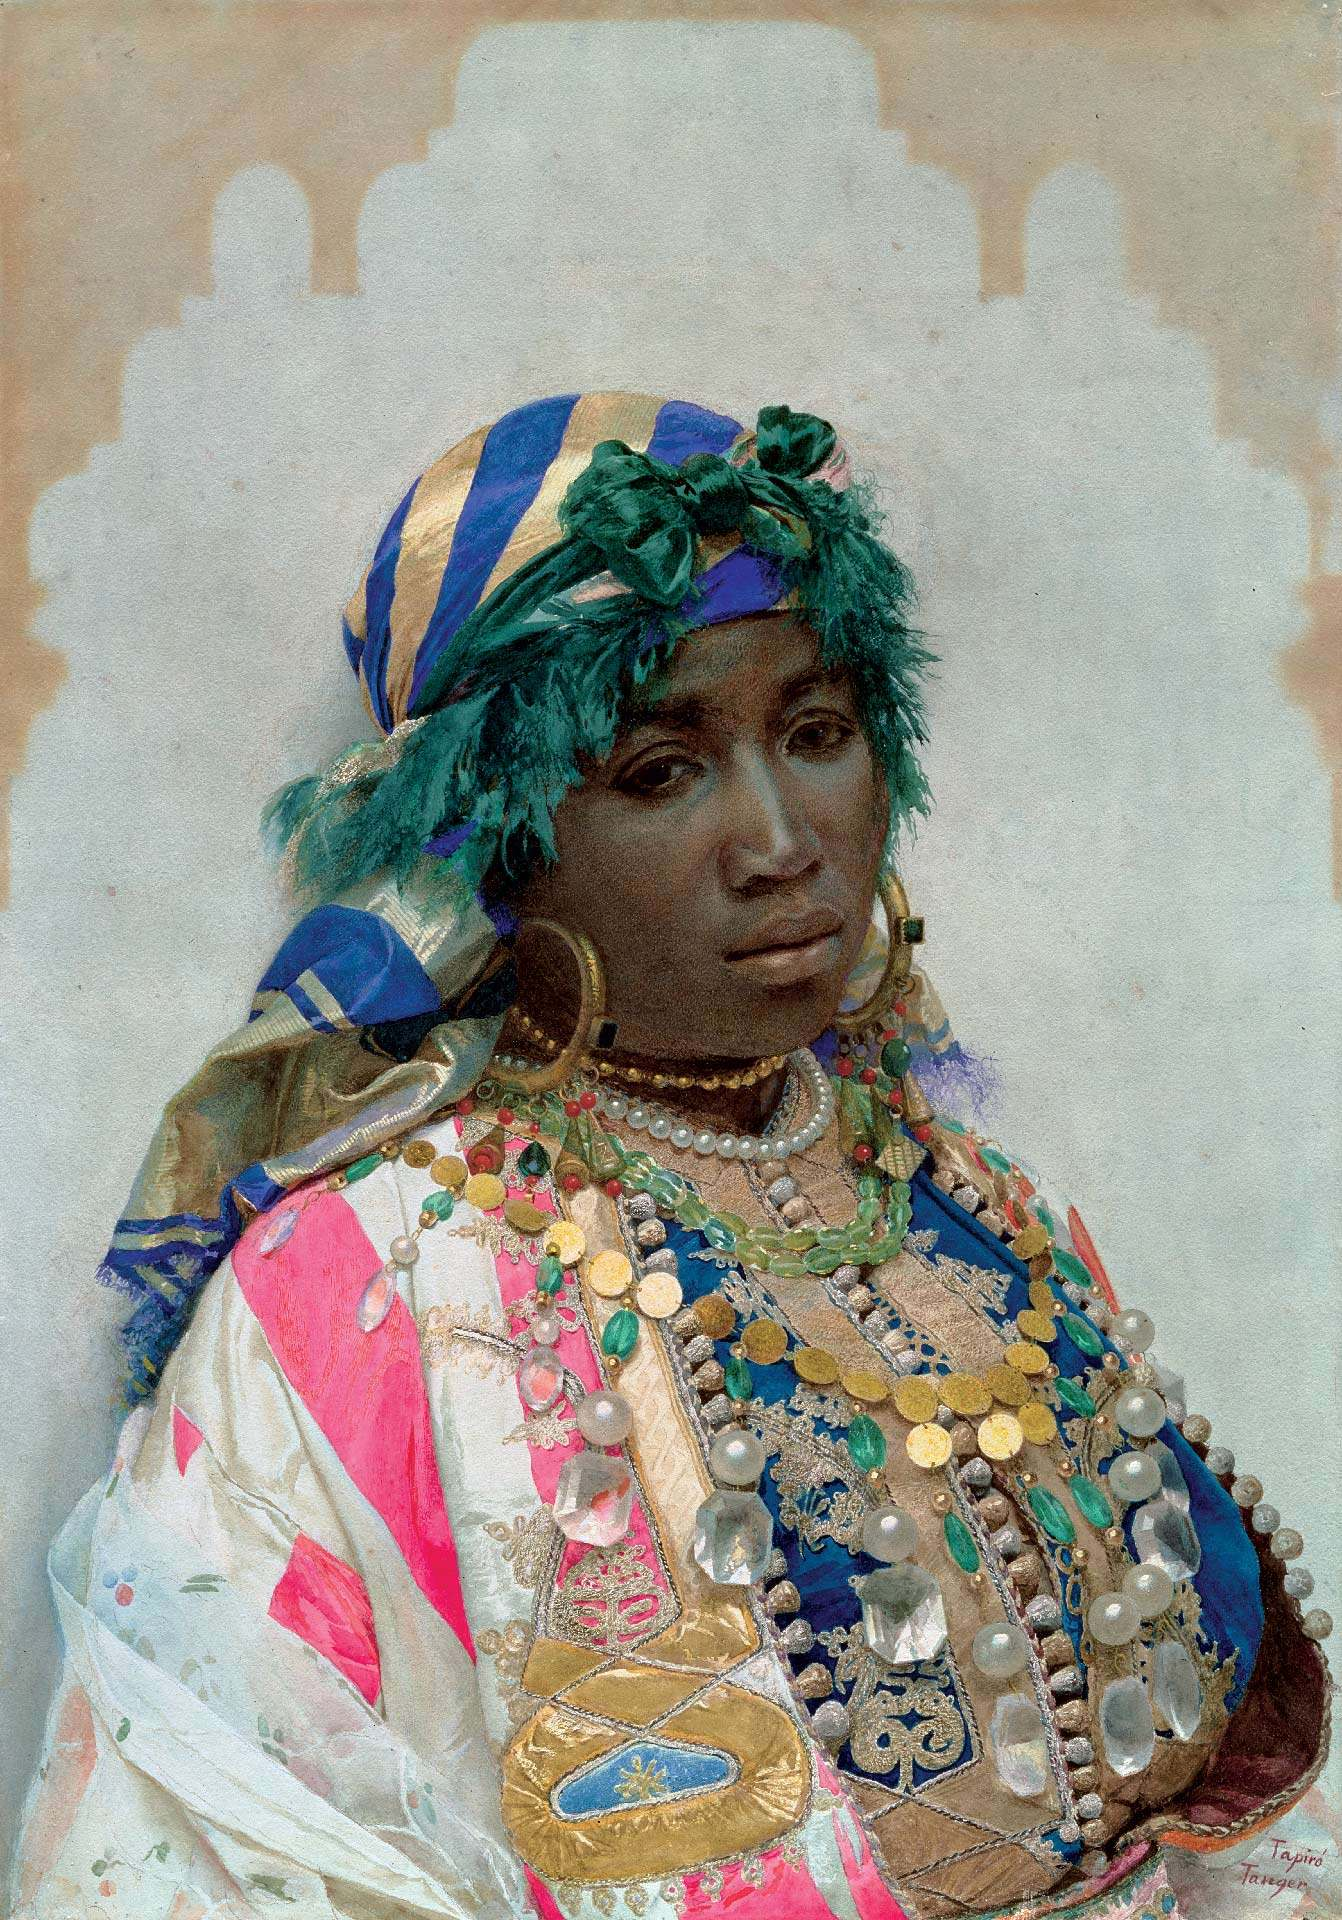 José Tapiró Baró, Tangerian Beauty, about 1891, watercolour on paper, 66 x 47 cm. New York, Dahesh Museum of Art. Photo © Dahesh Museum of Art, New York, USA / The Bridgeman Art Library